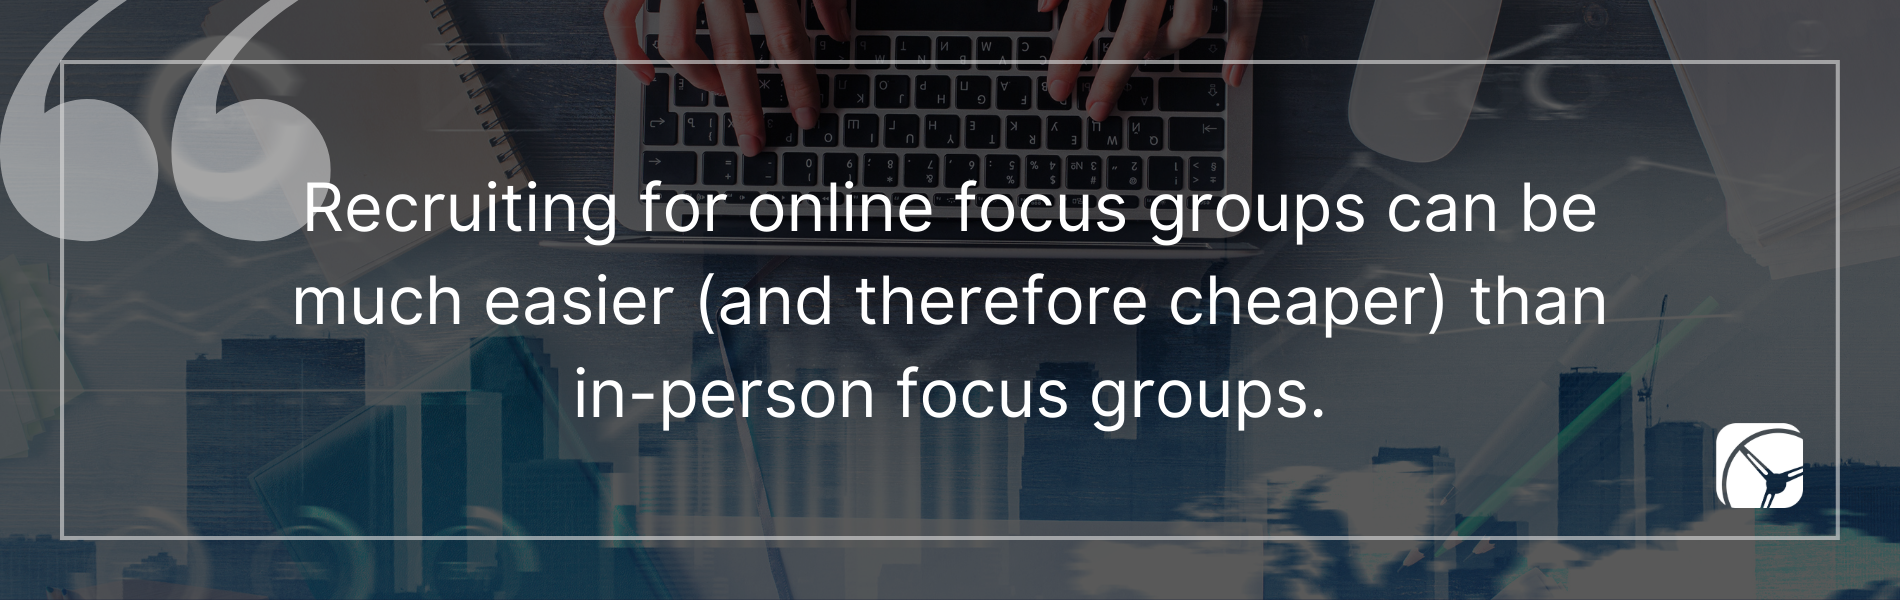 Recruiting for online focus groups can be much easier (and therefore cheaper) than in-person focus groups.